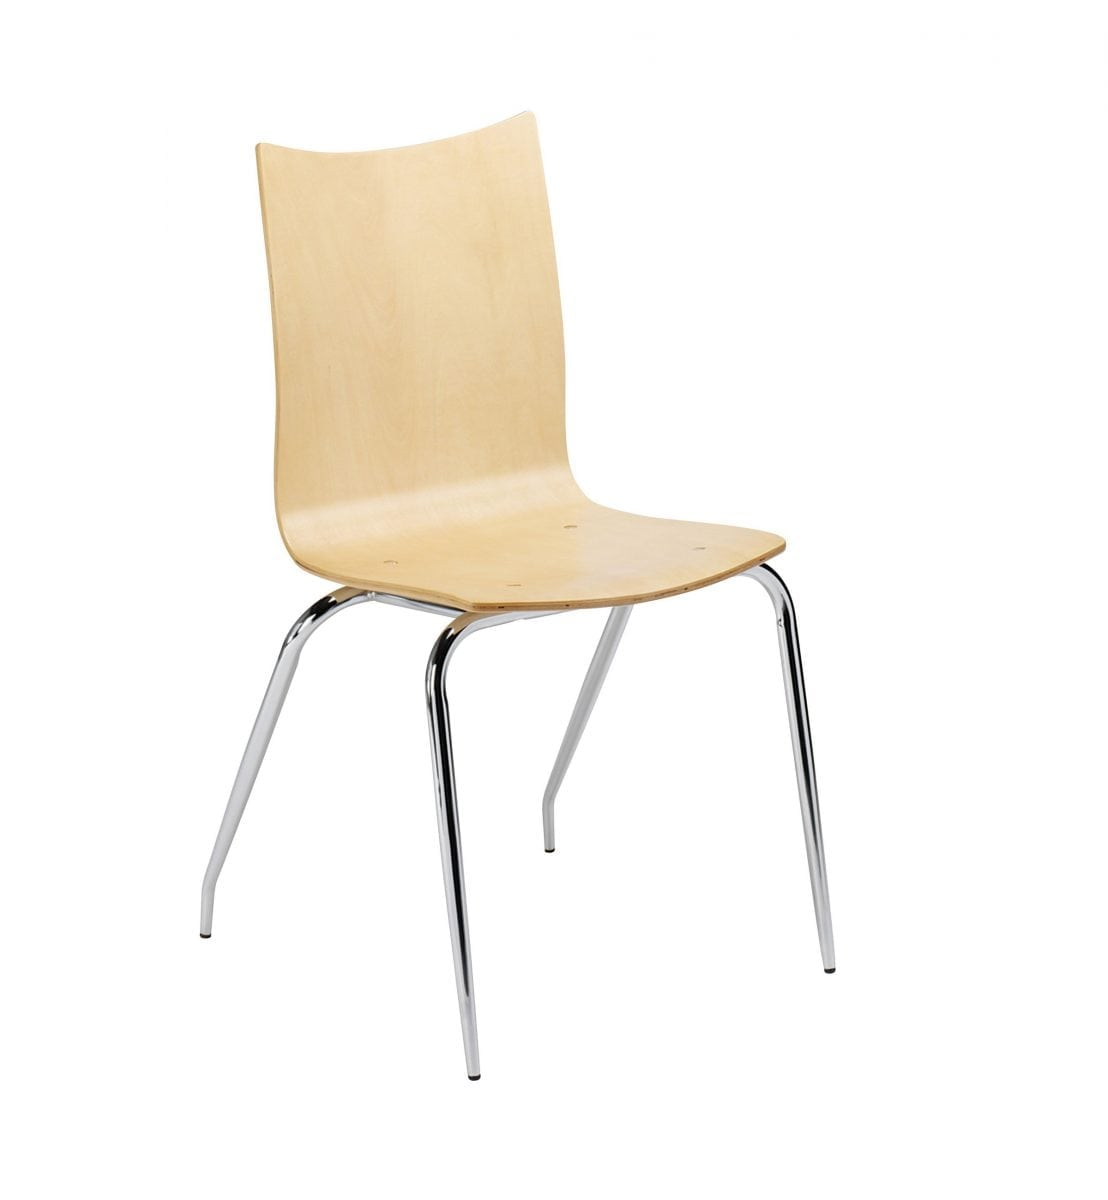 At4 Modern Wooden Stackable Chair For Cafes Bars And